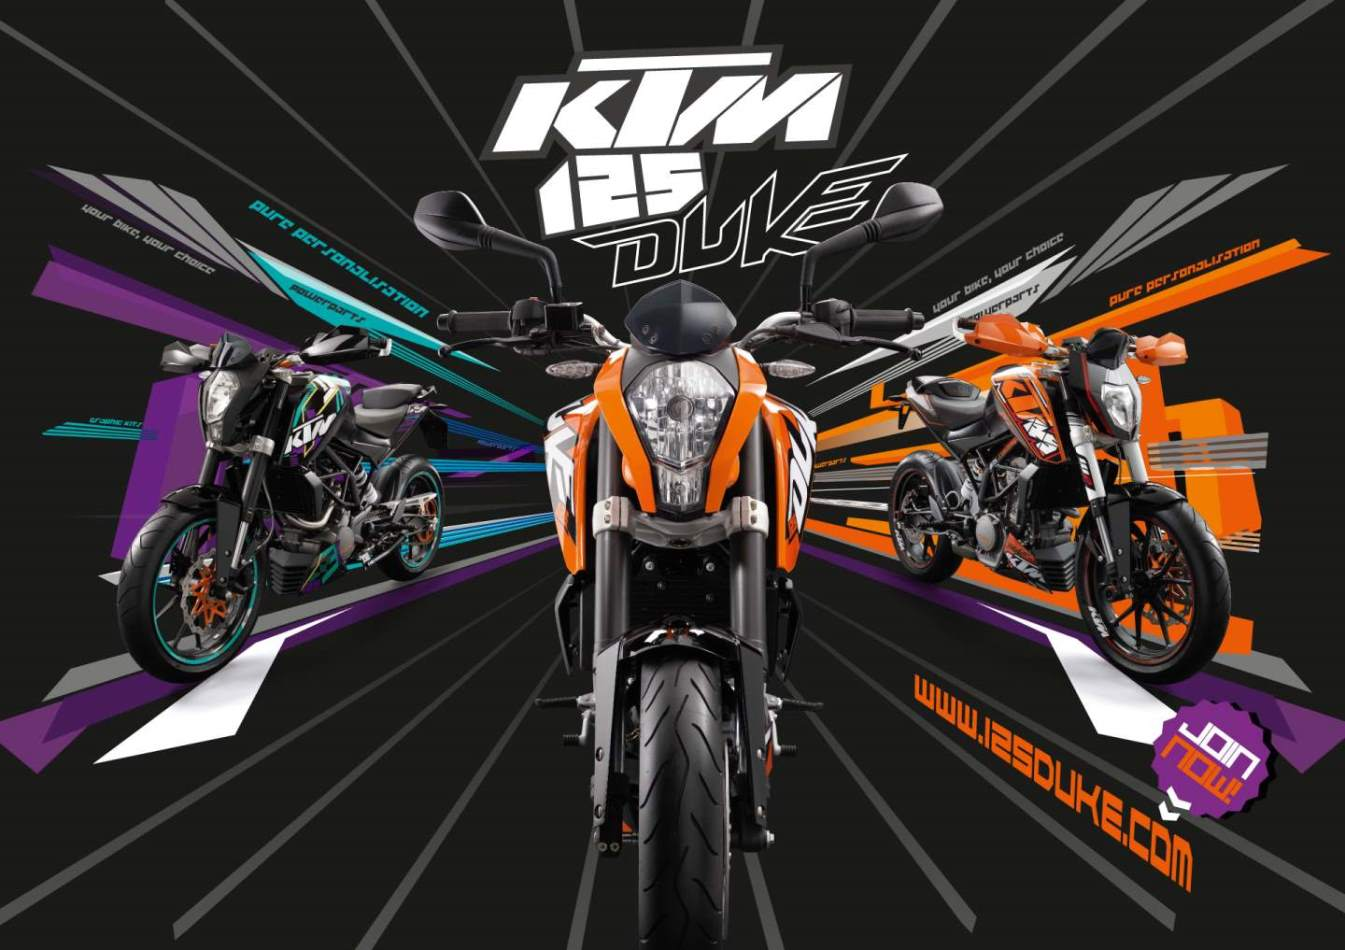 KTM DUKE 125 REVIEW AND WALLPAPERS